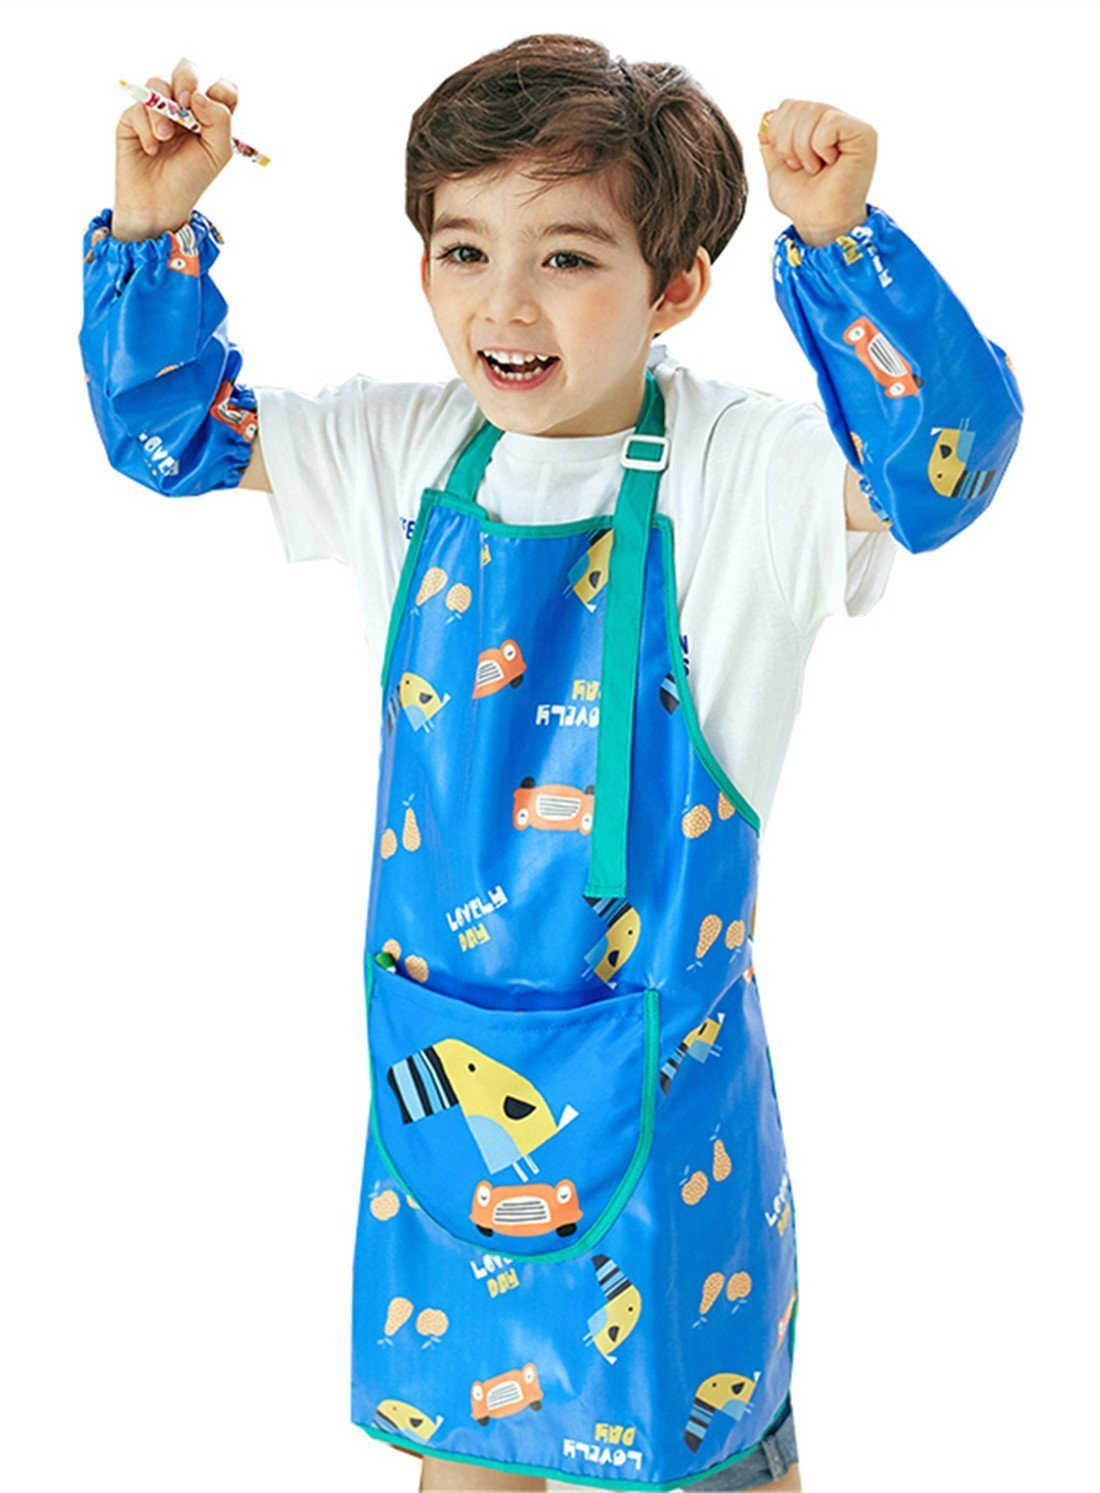 Chilsuessy Children Kids Waterproof Smocks for Painting, with Sleeves, Yellow Dog, XL/Body Height 130-145cm